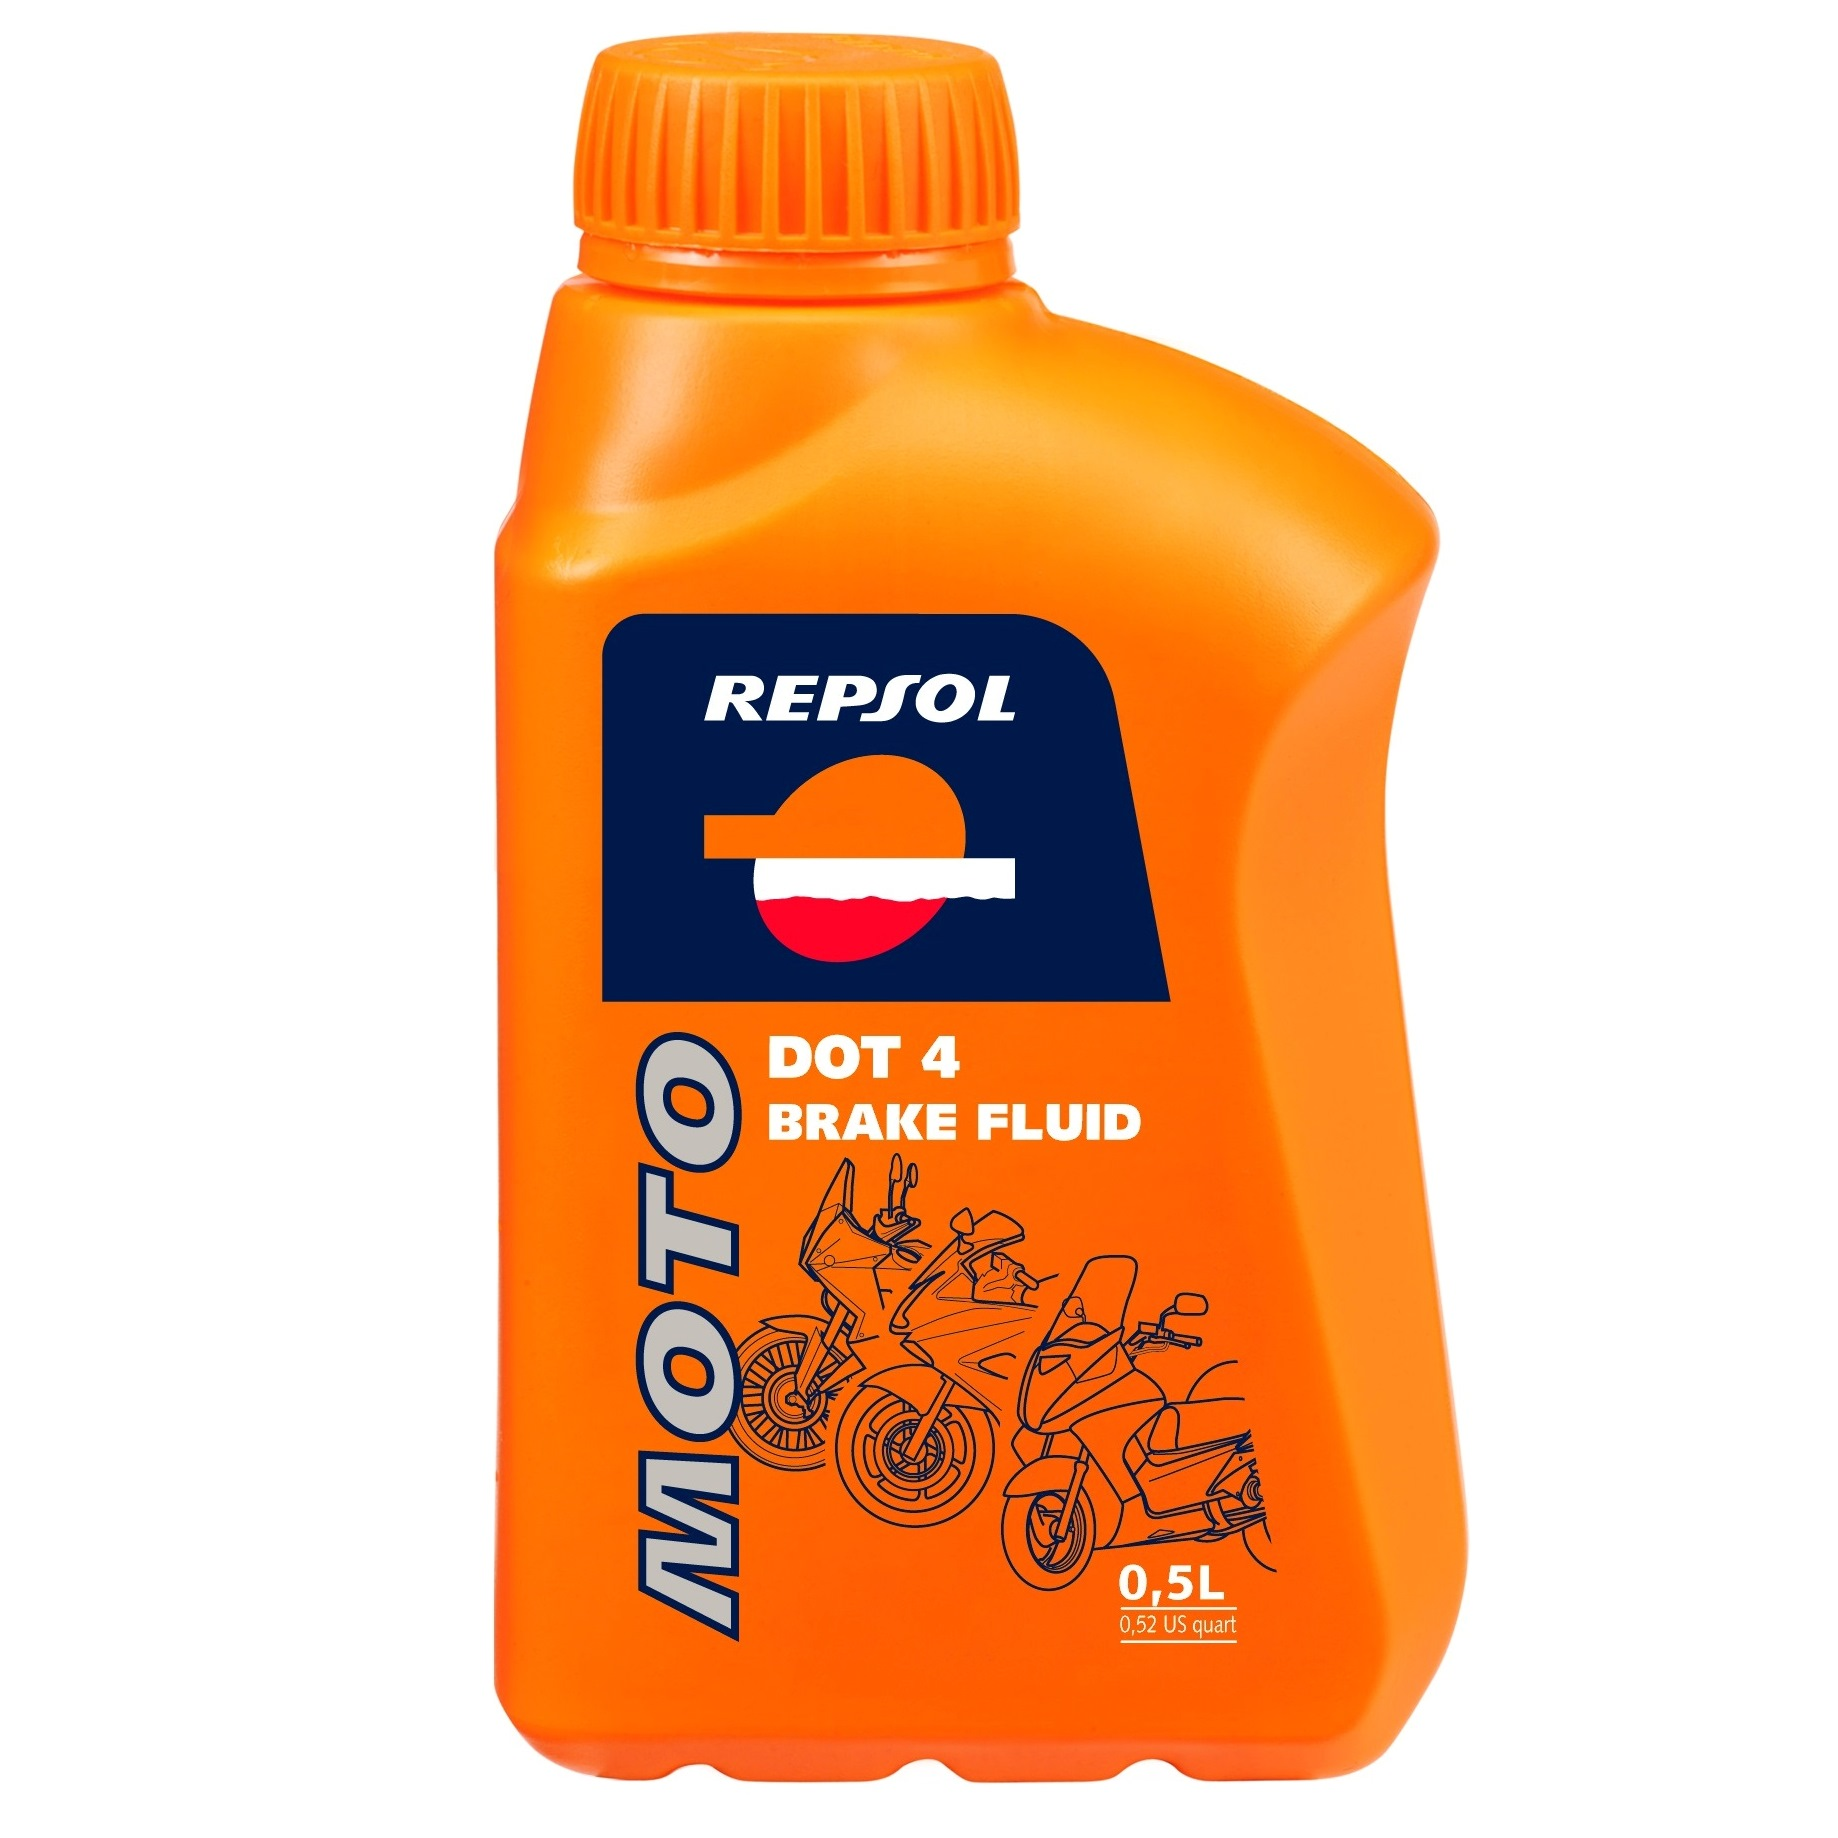 REPSOL MOTO DOT 4 BRAKE FLUID 500 ml RP713A56